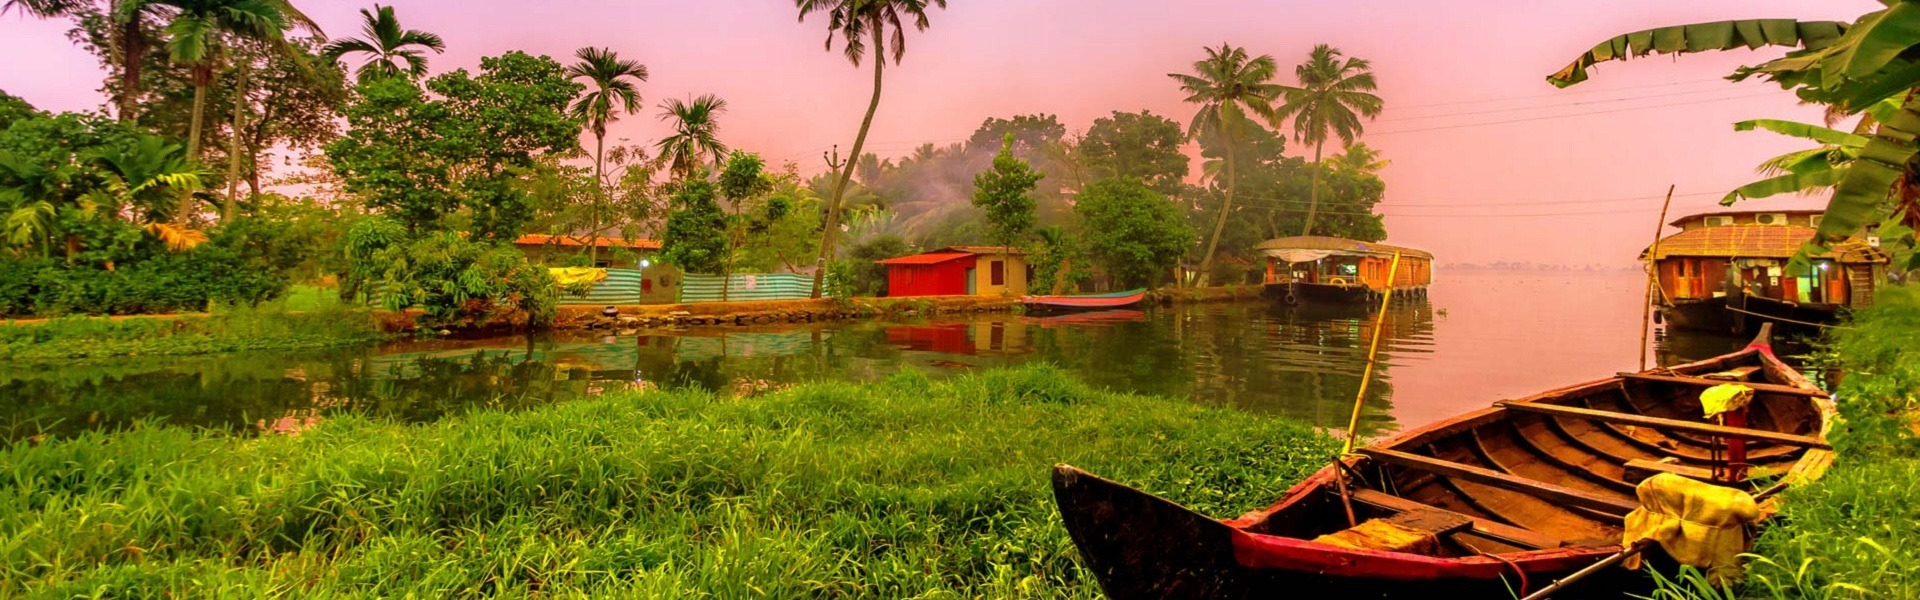 13 Amazing Places to visit in August in India